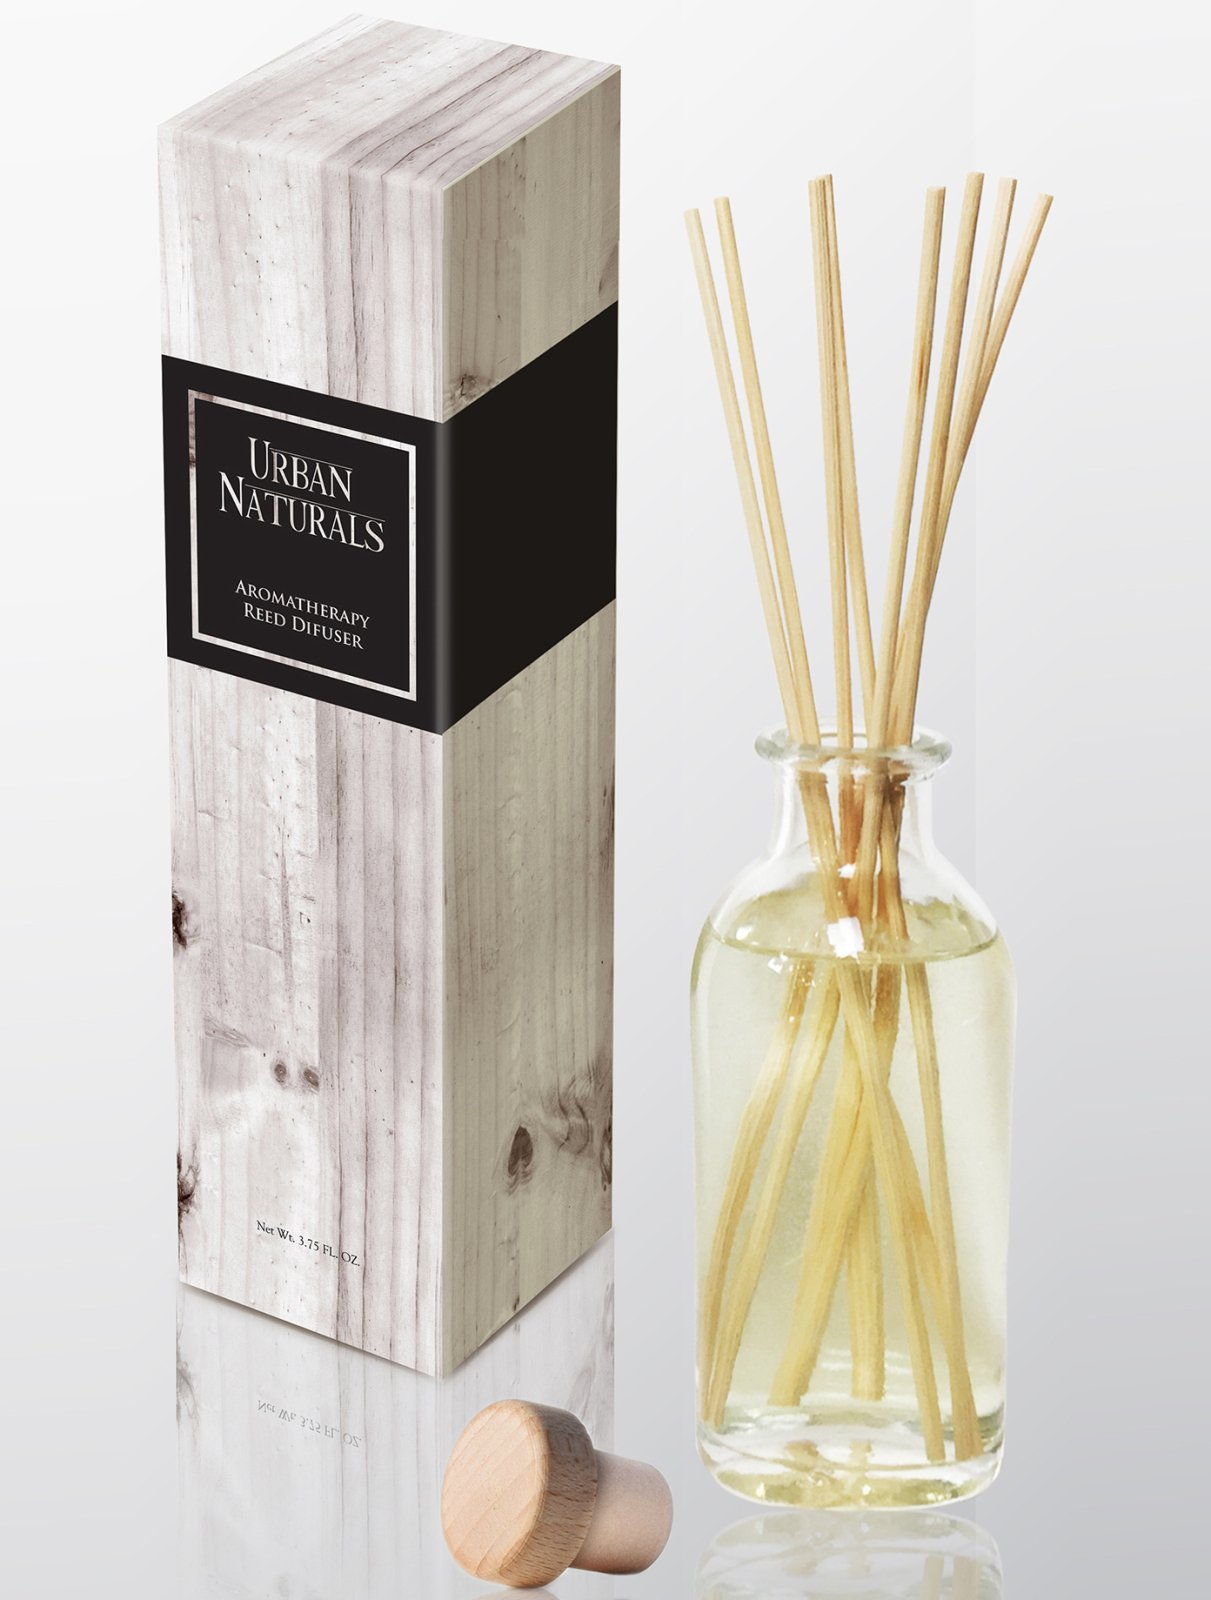 Urban Naturals Coconut Lemongrass Home Fragrance Reed Diffuser Oil Set | Tropical Blend of Lemongrass, Fresh Limes & Sweet Coconut Milk | Great Home Gift Idea! Vegan. Made in The USA by Urban Naturals (Image #2)